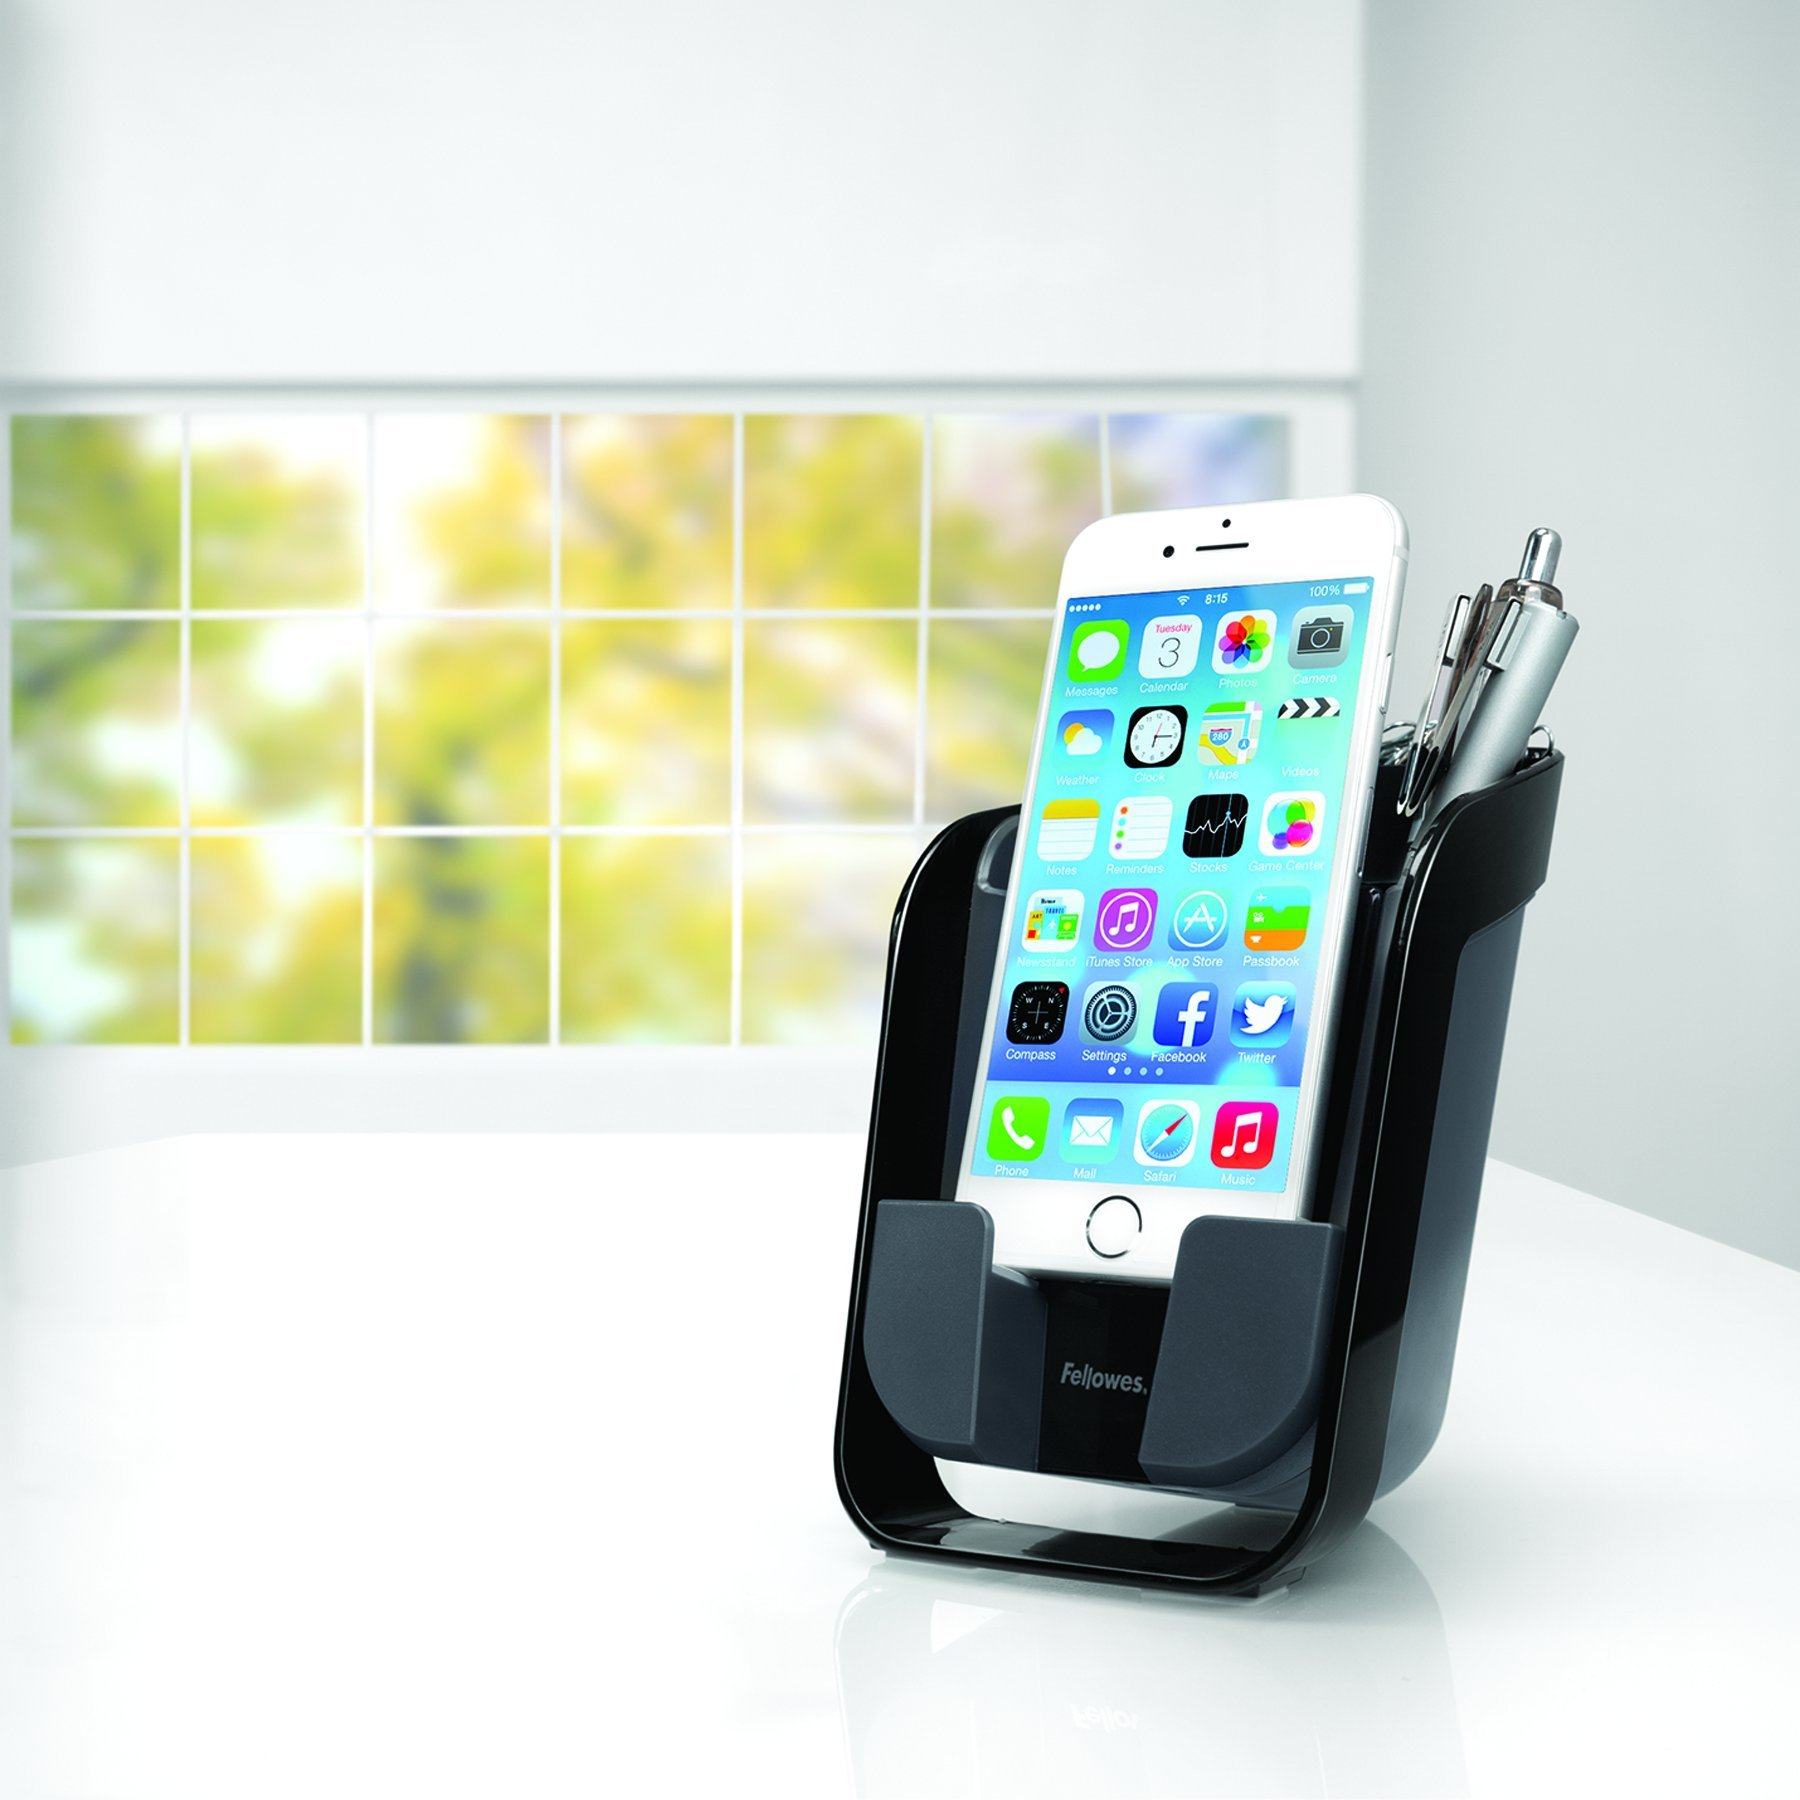 Fellowes I-Spire Series Pencil & Phone Station Smartphone Stand, Black (9473201)